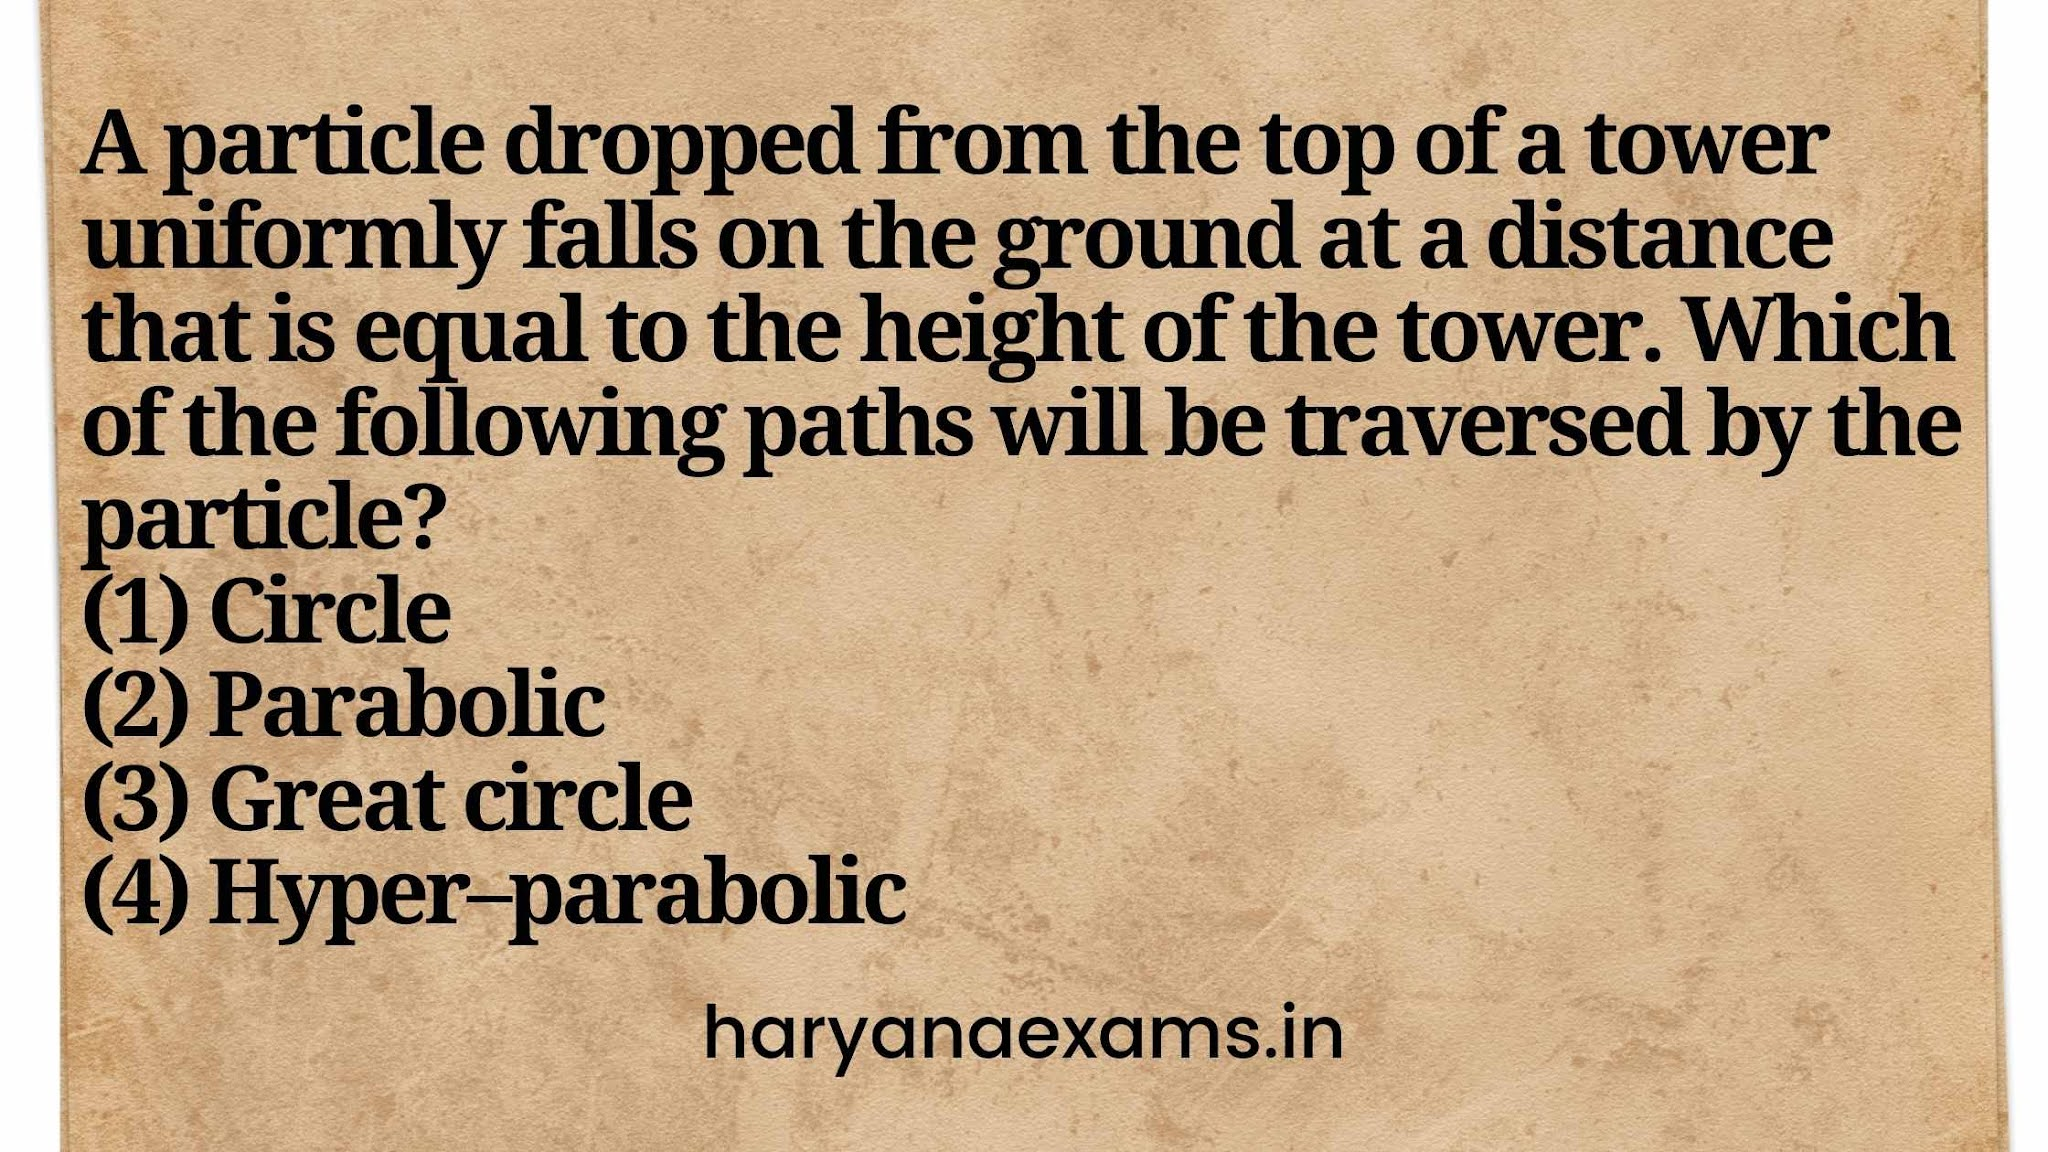 A particle dropped from the top of a tower uniformly falls on the ground at a distance that is equal to the height of the tower. Which of the following paths will be traversed by the particle?